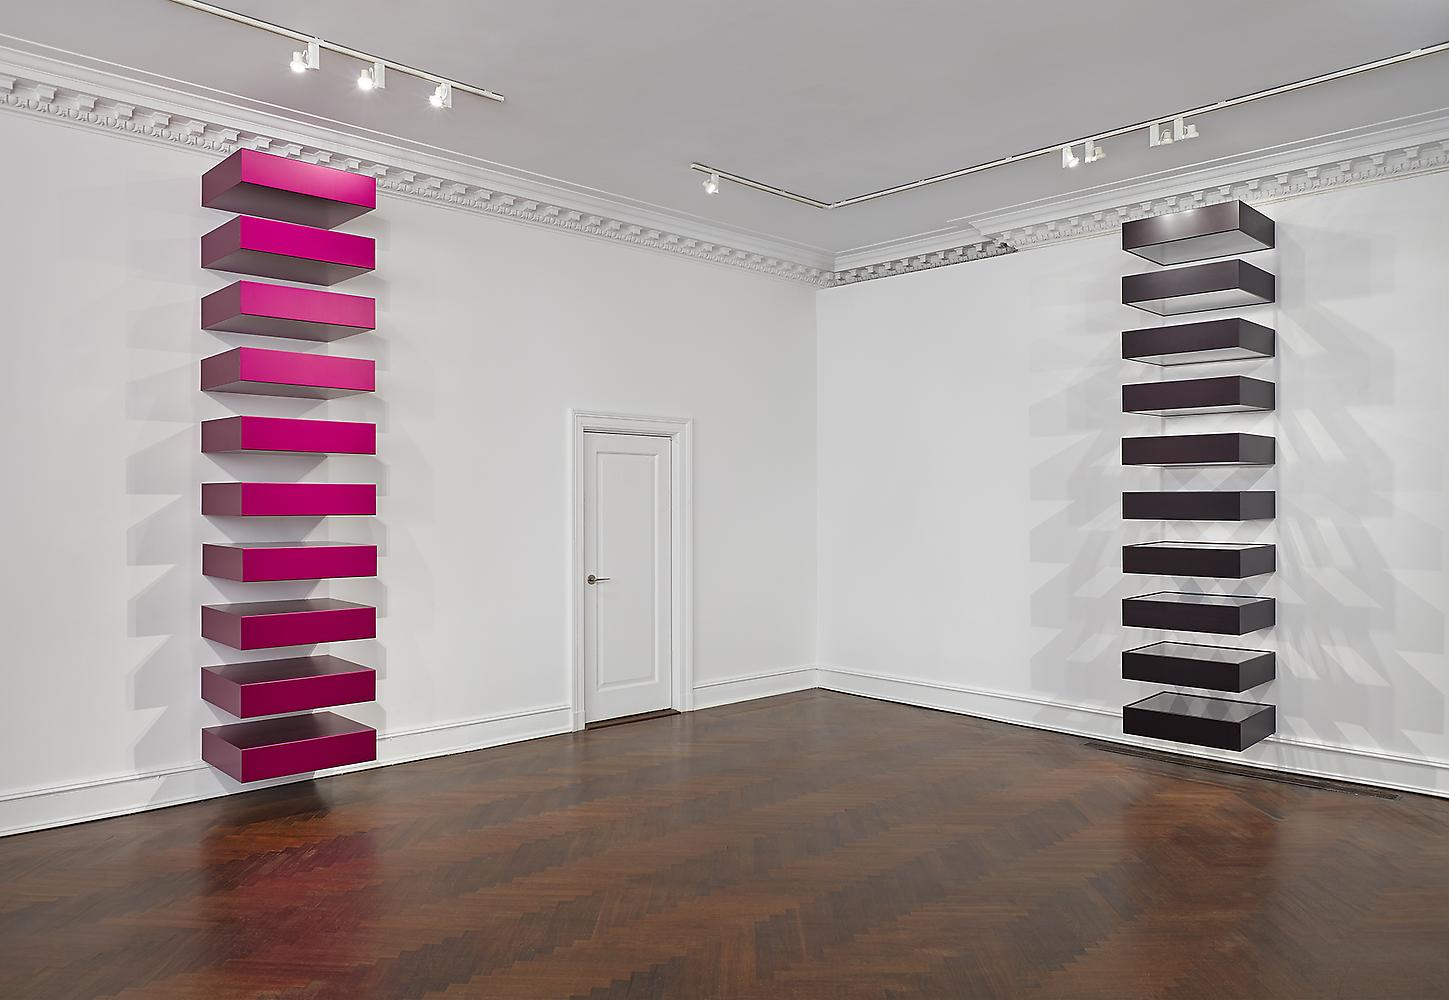 Art history 101 minimalism canvas a blog by saatchi art for Donald judd stack 1972